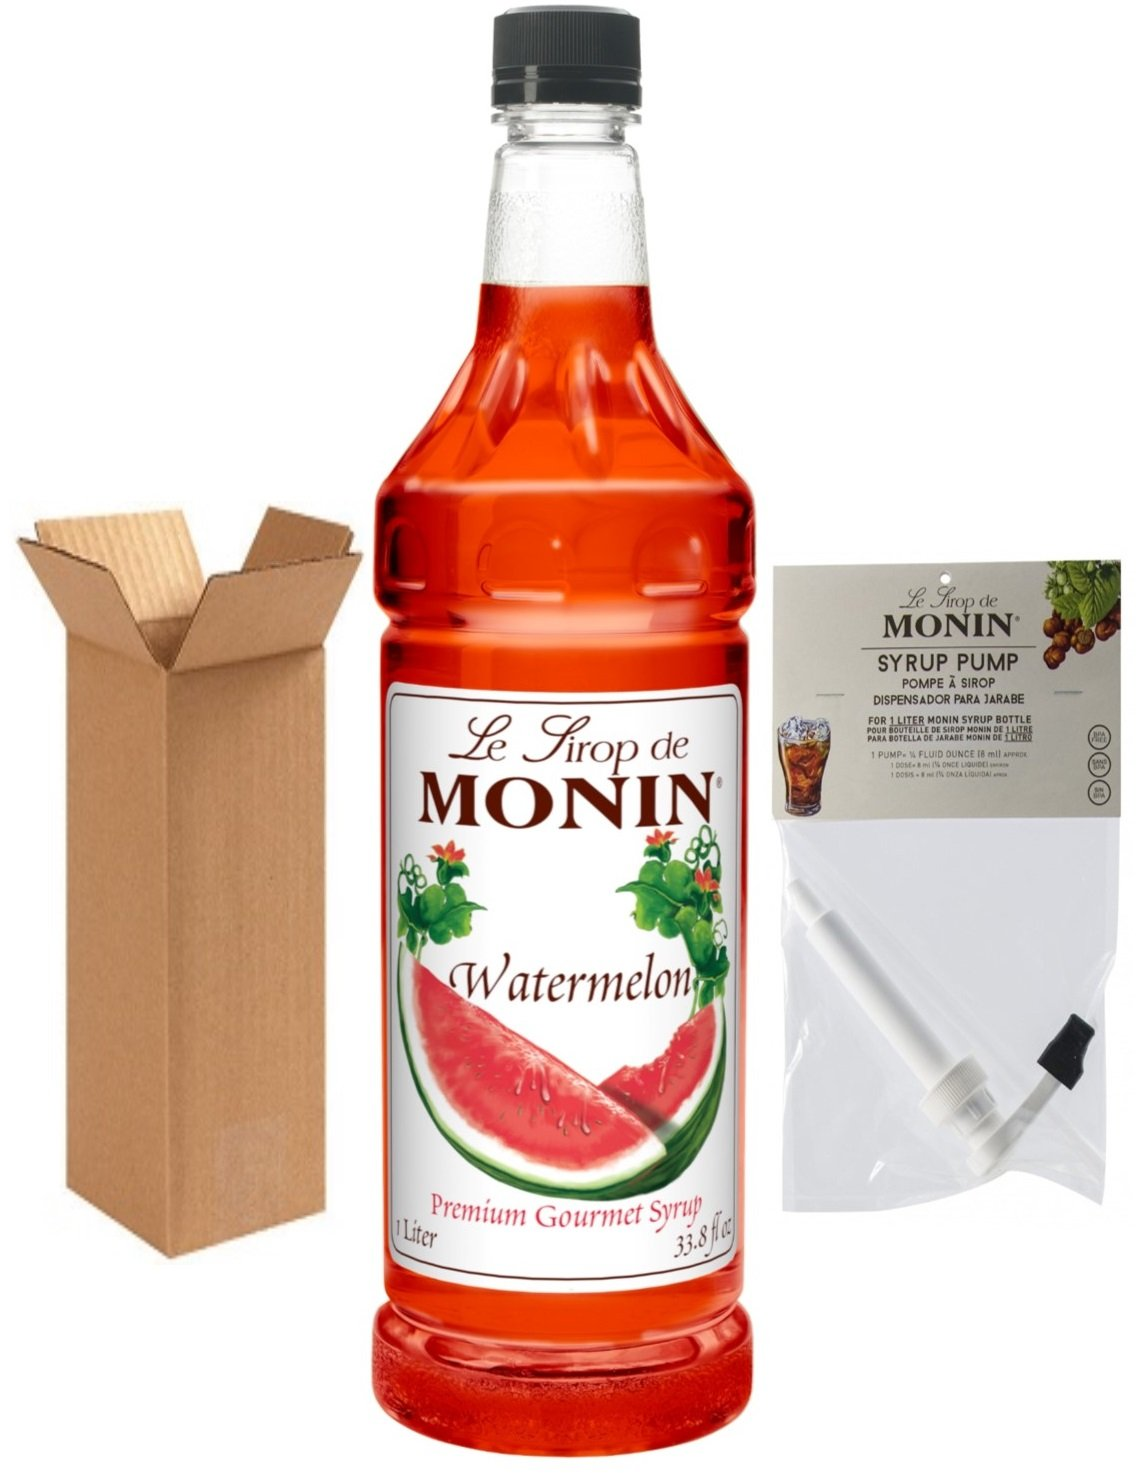 Amazon.com : Monin Watermelon Syrup, 33.8-Ounce Plastic Bottle (1 Liter) with Monin BPA Free Pump, Boxed. : Grocery & Gourmet Food